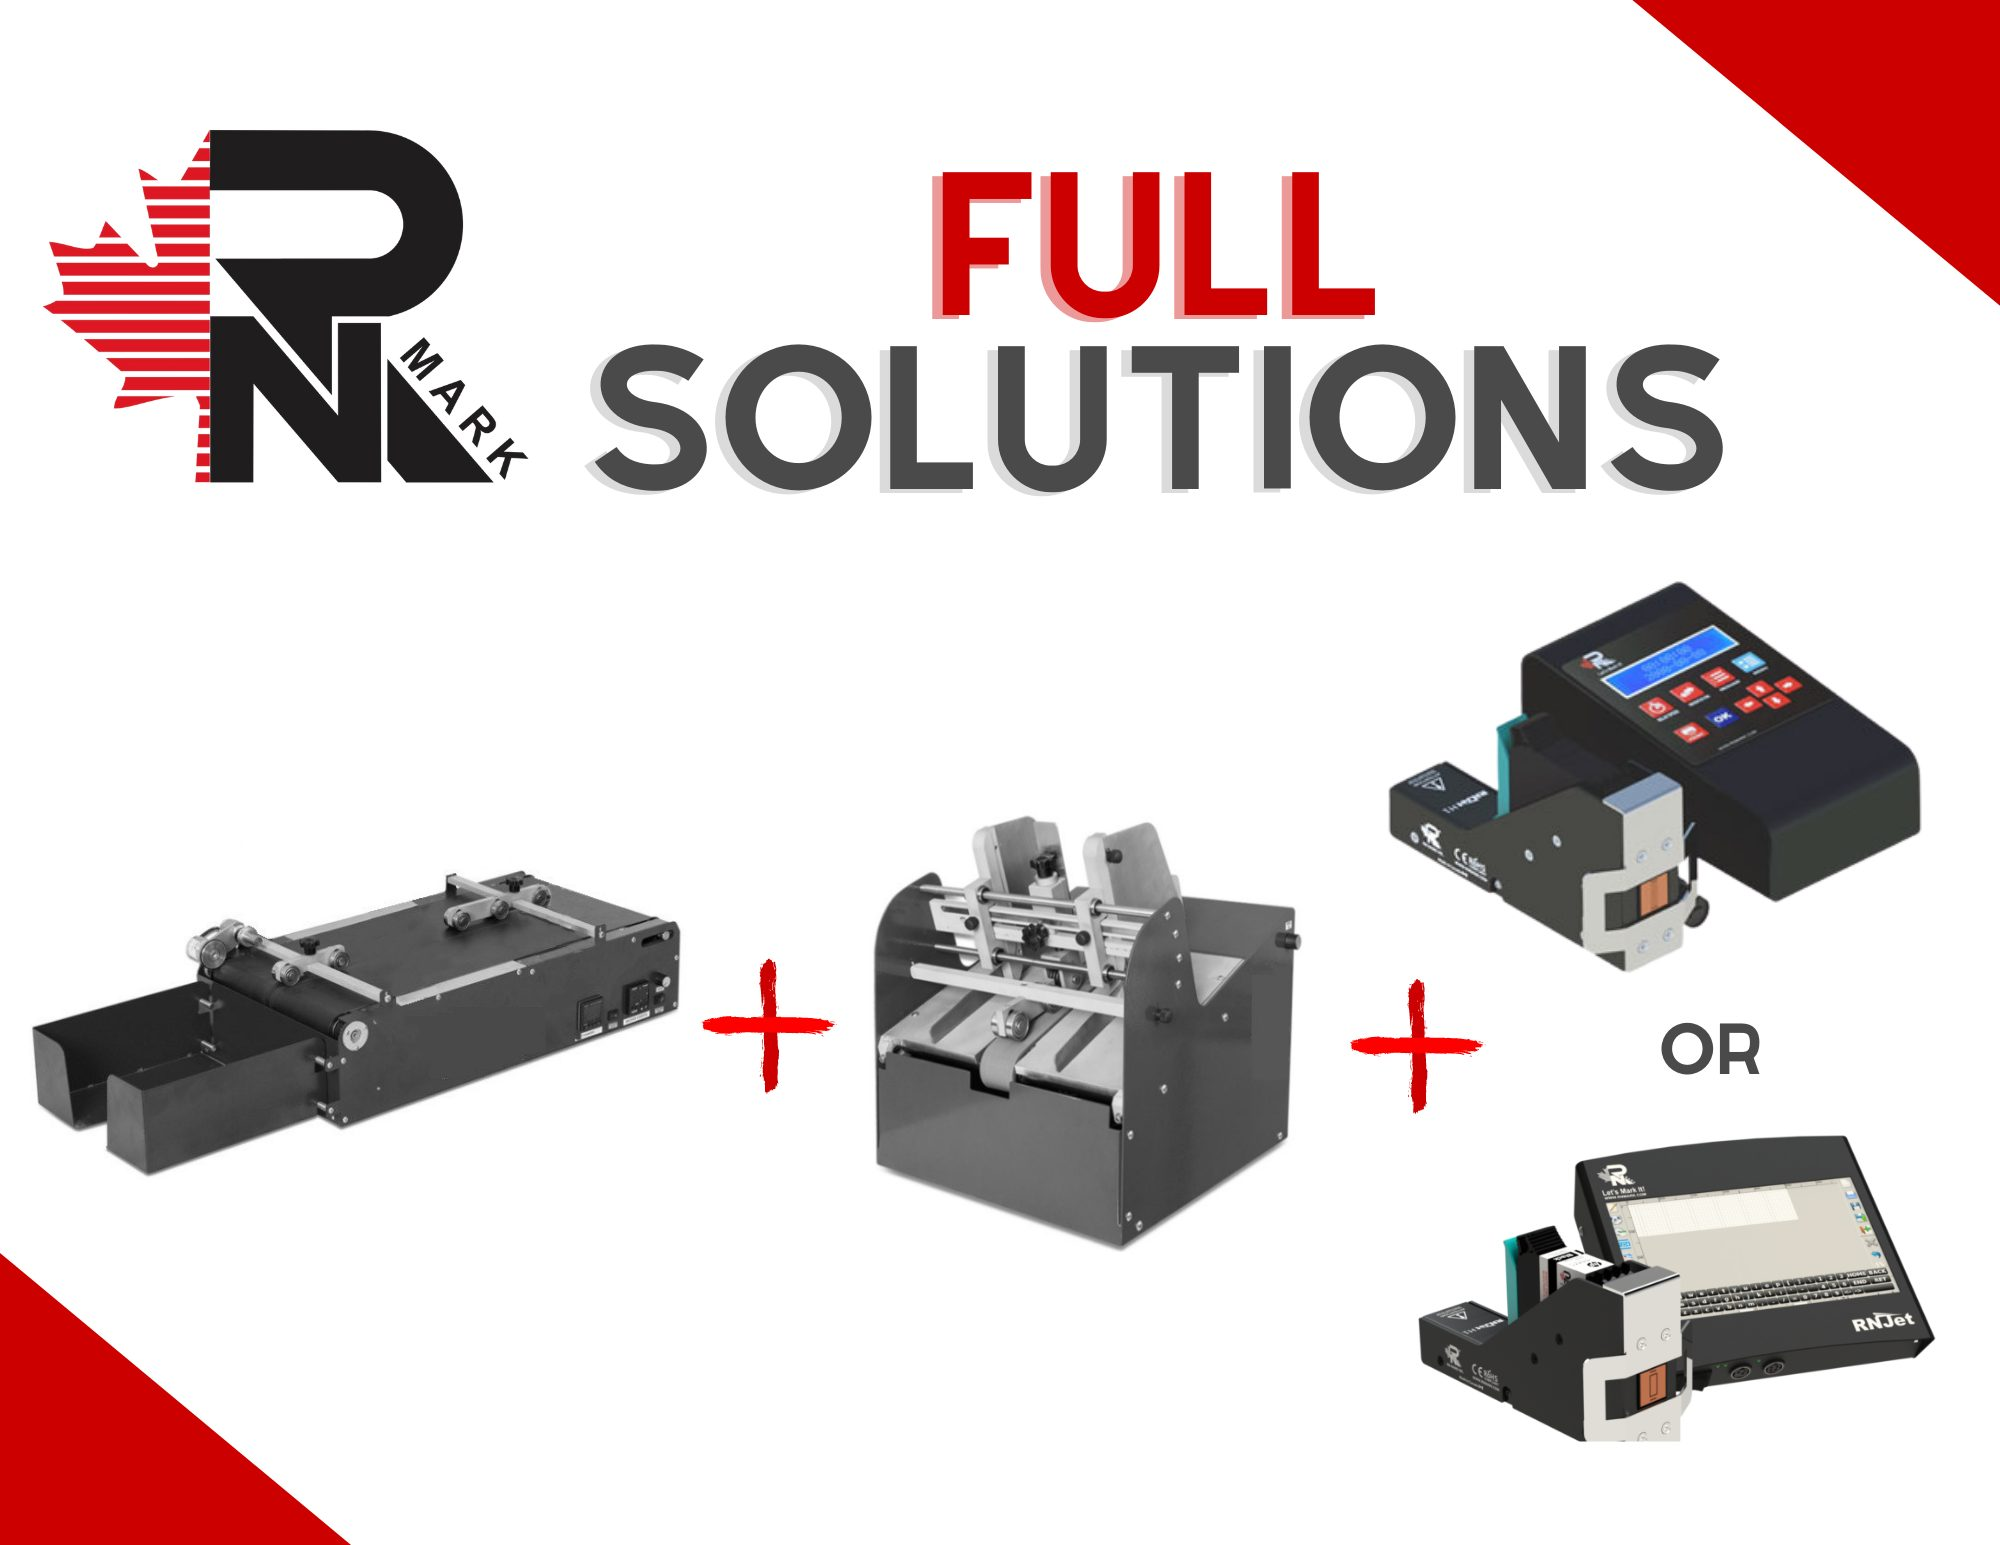 Friction-Carton-Feeder-Coding-Marking-Solution-RN Mark